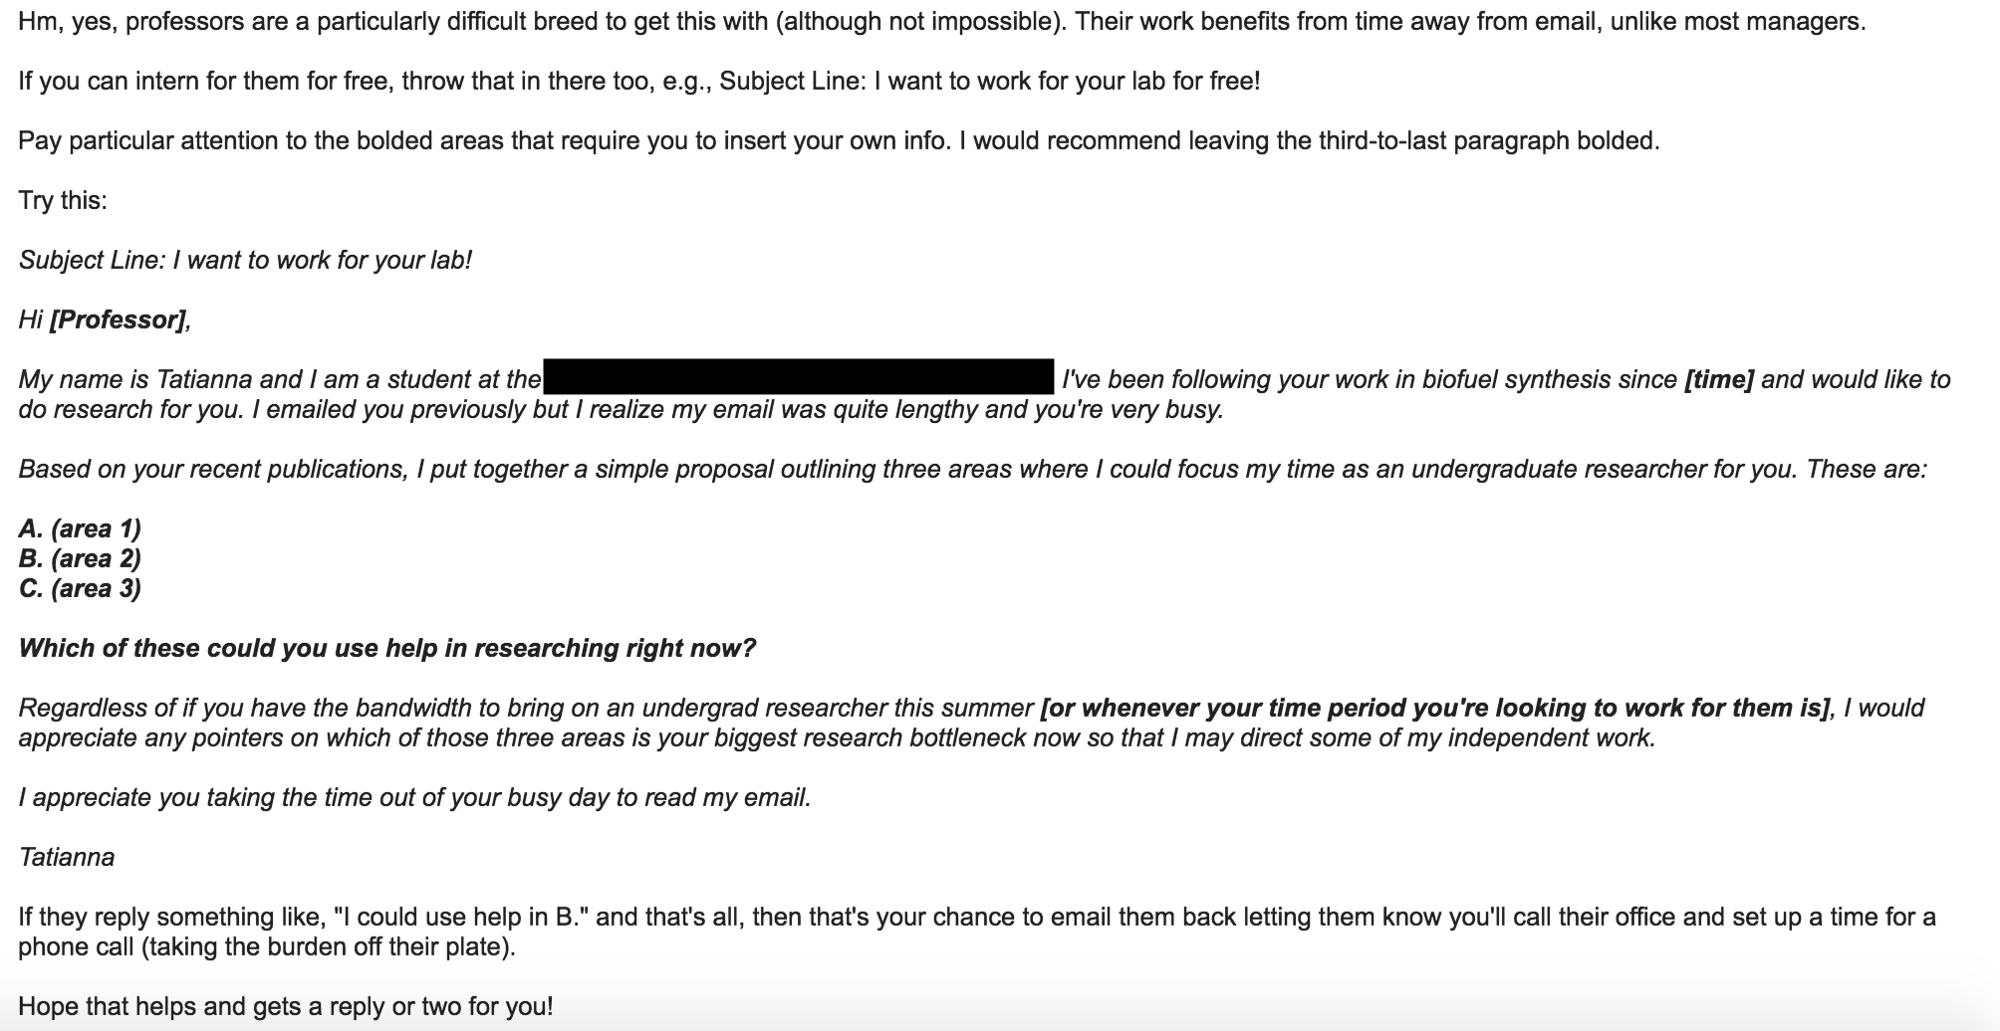 How to Use Email to Get a Job With a Professor – Age of Awareness